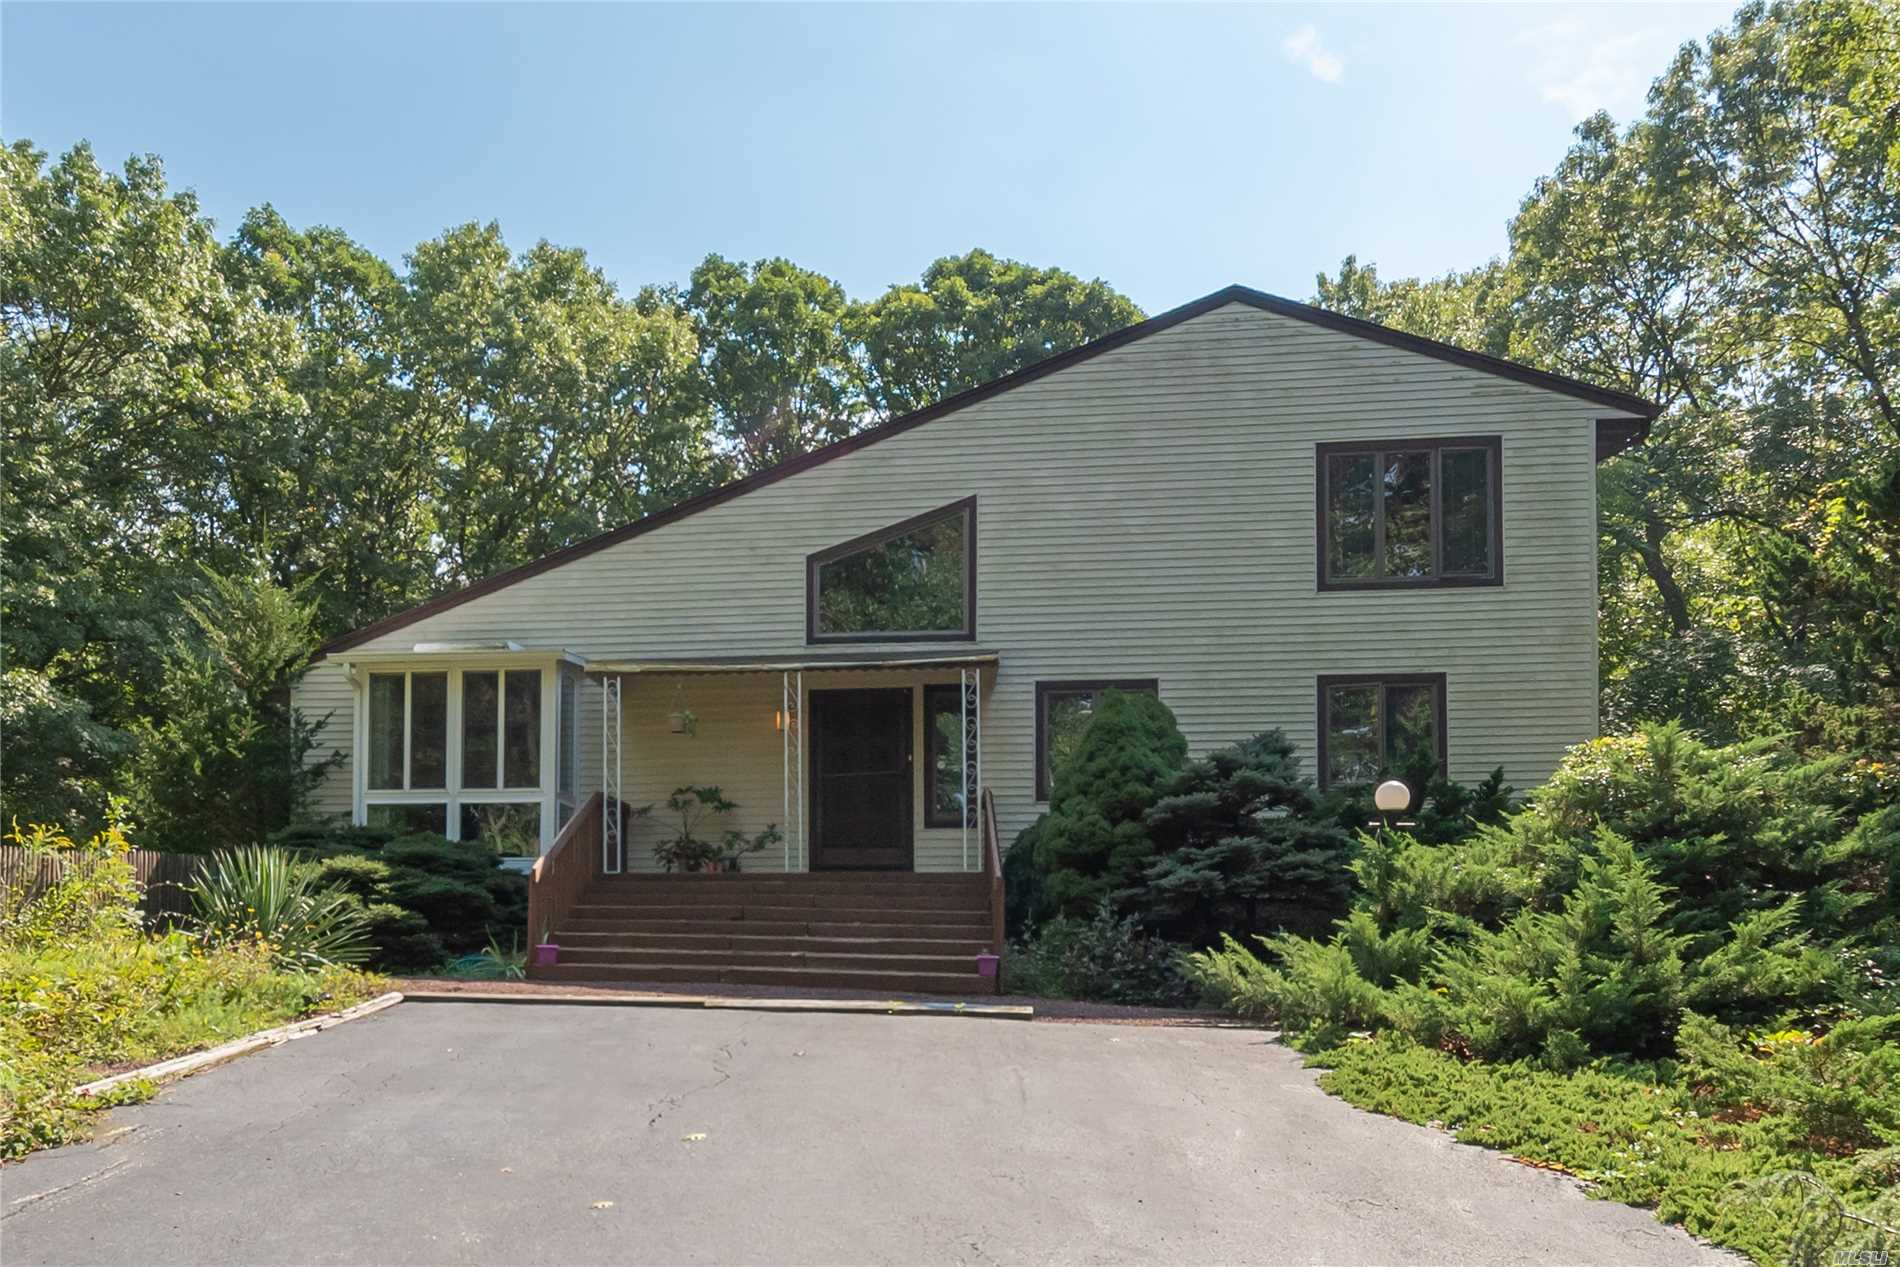 Contemporary Home In Beautiful Wooded Setting, Close To Beach And Golf Course. Open Floorplan With Cathedral Ceilings, Exposed Beams And An Open Staircase. Separate Laundry Room And Screened Porch. Full Finished Basement With .5 Bath And Outside Exit.